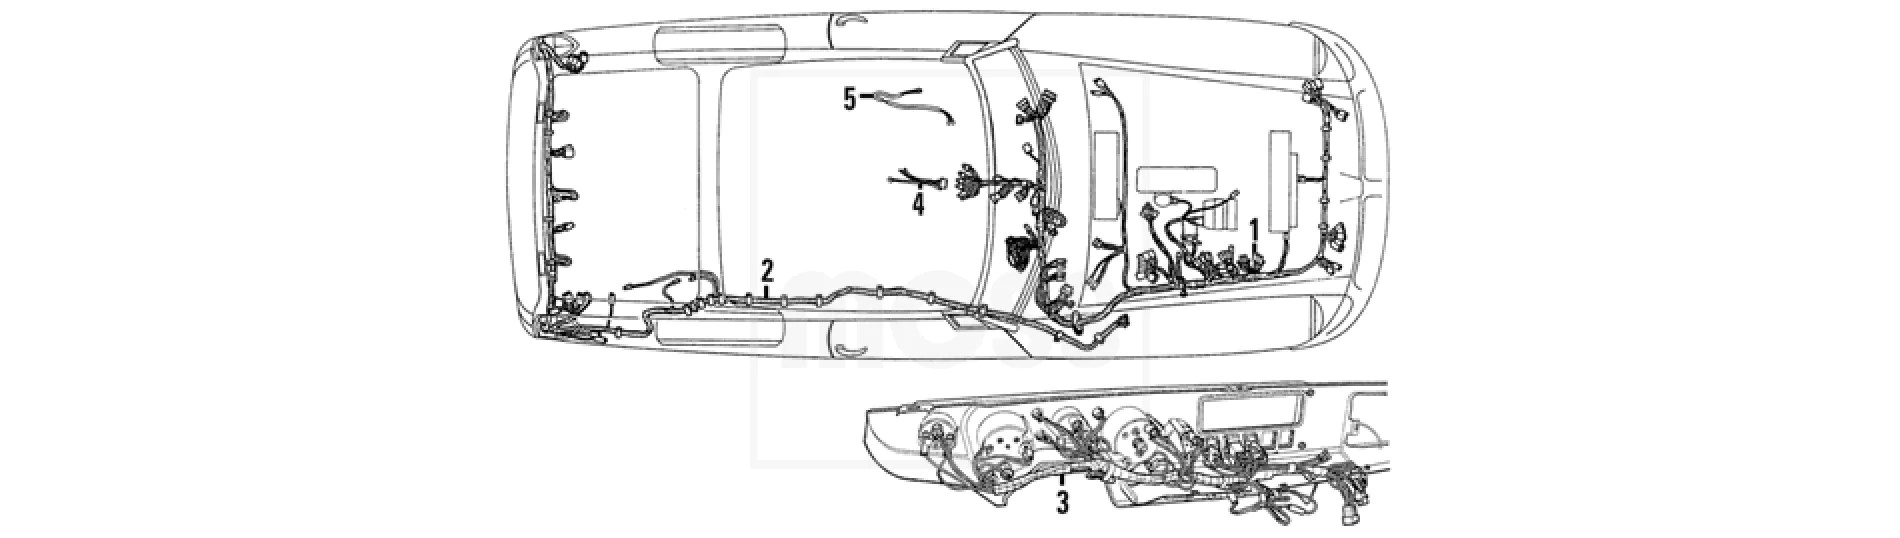 hight resolution of mgb gt wiring harness wiring diagram datasource 1972 mgb wiring harness